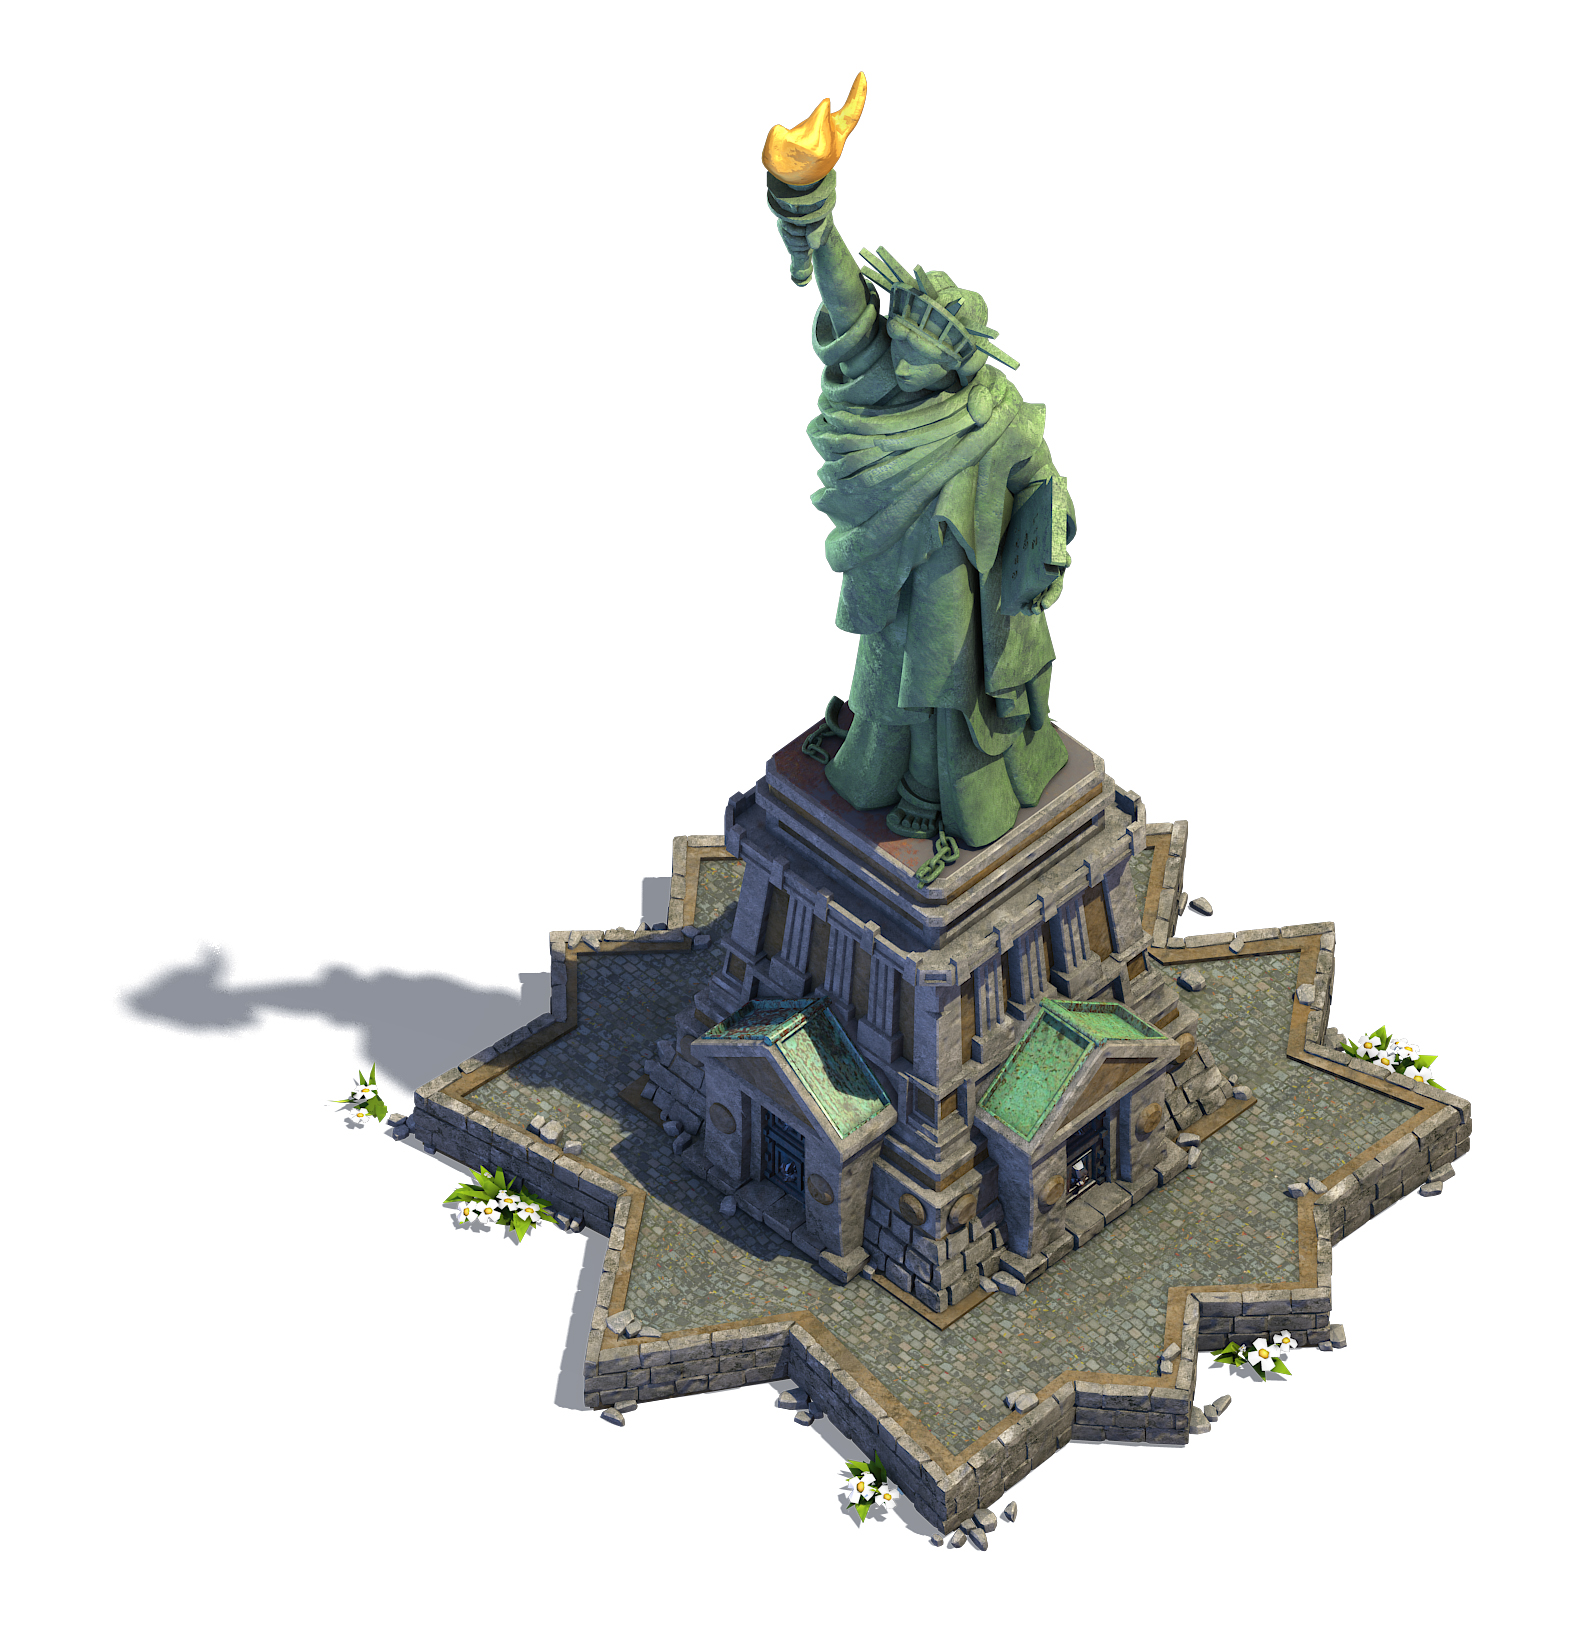 Wonder_StatueLiberty_GameView